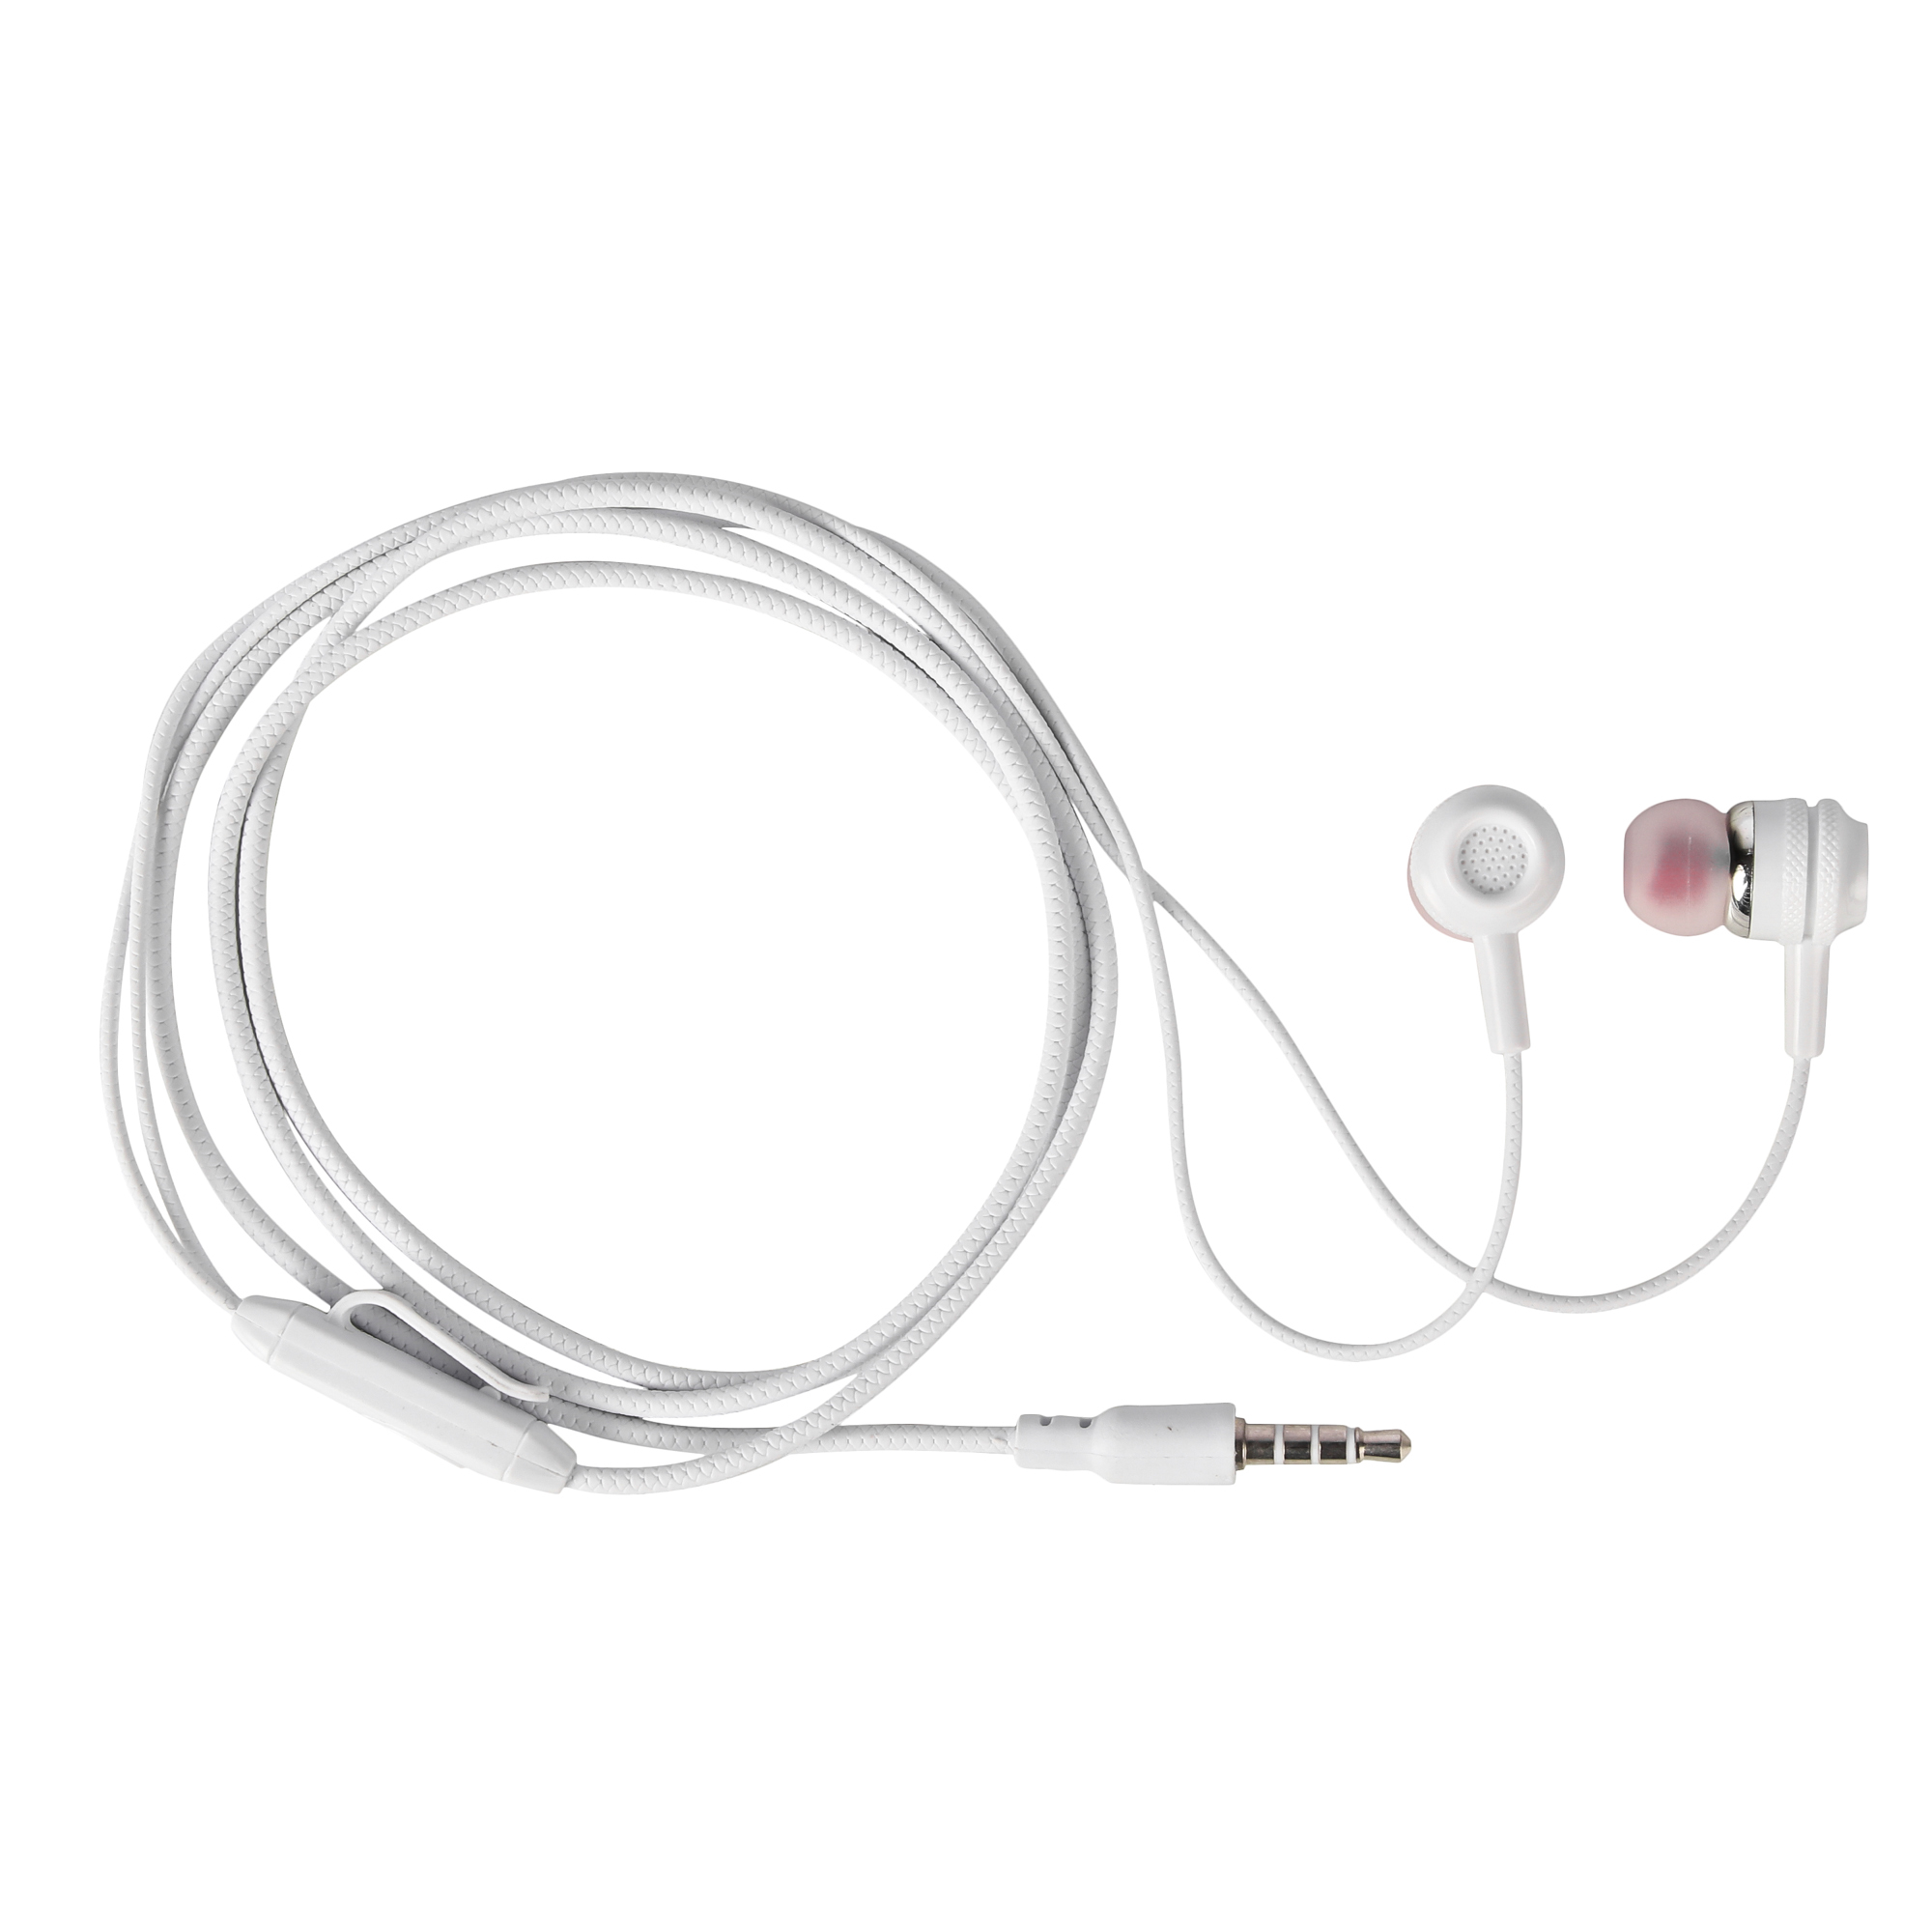 Stereo sound in - Ear earphone heavy bass 3.5 mm audio jack, Superior sound quality Bluei Rambo R5 Wired handsfree with mic